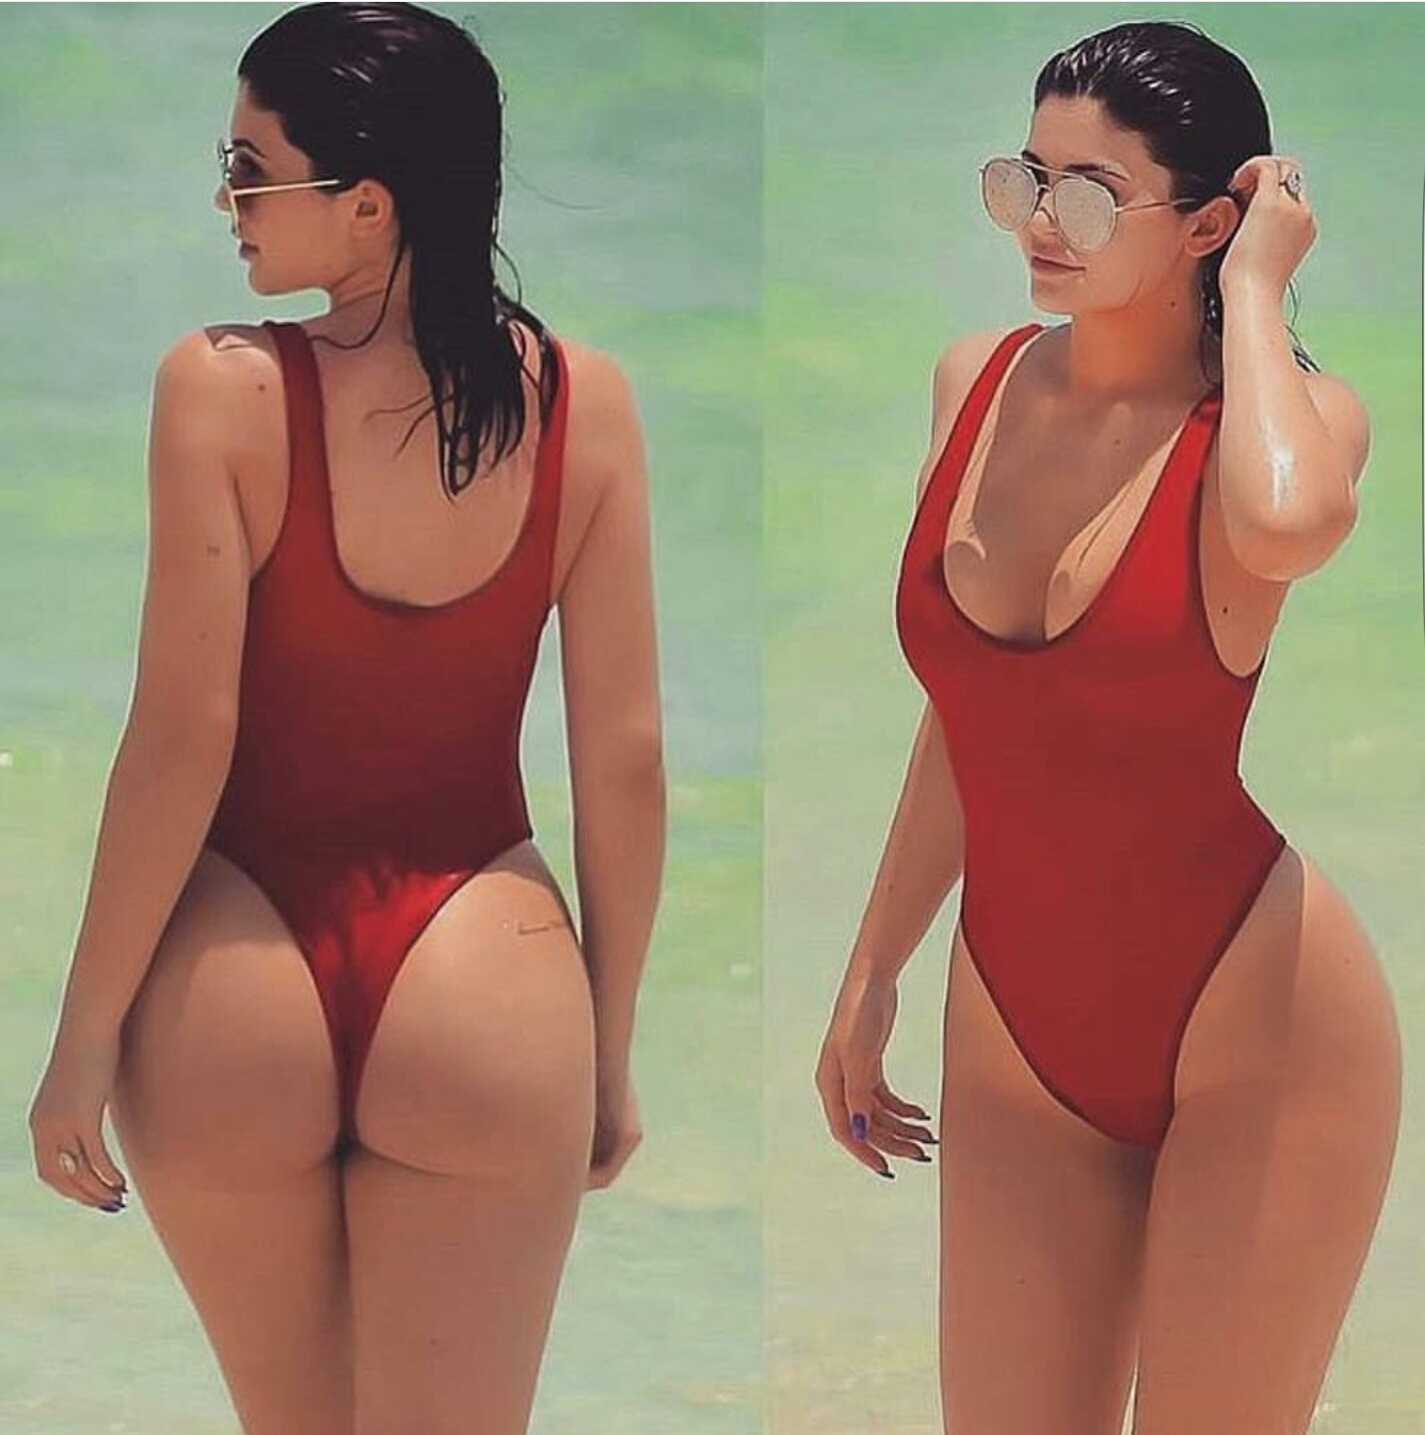 Kylie jenner beach welcome to linda ikeji s blog more photos from